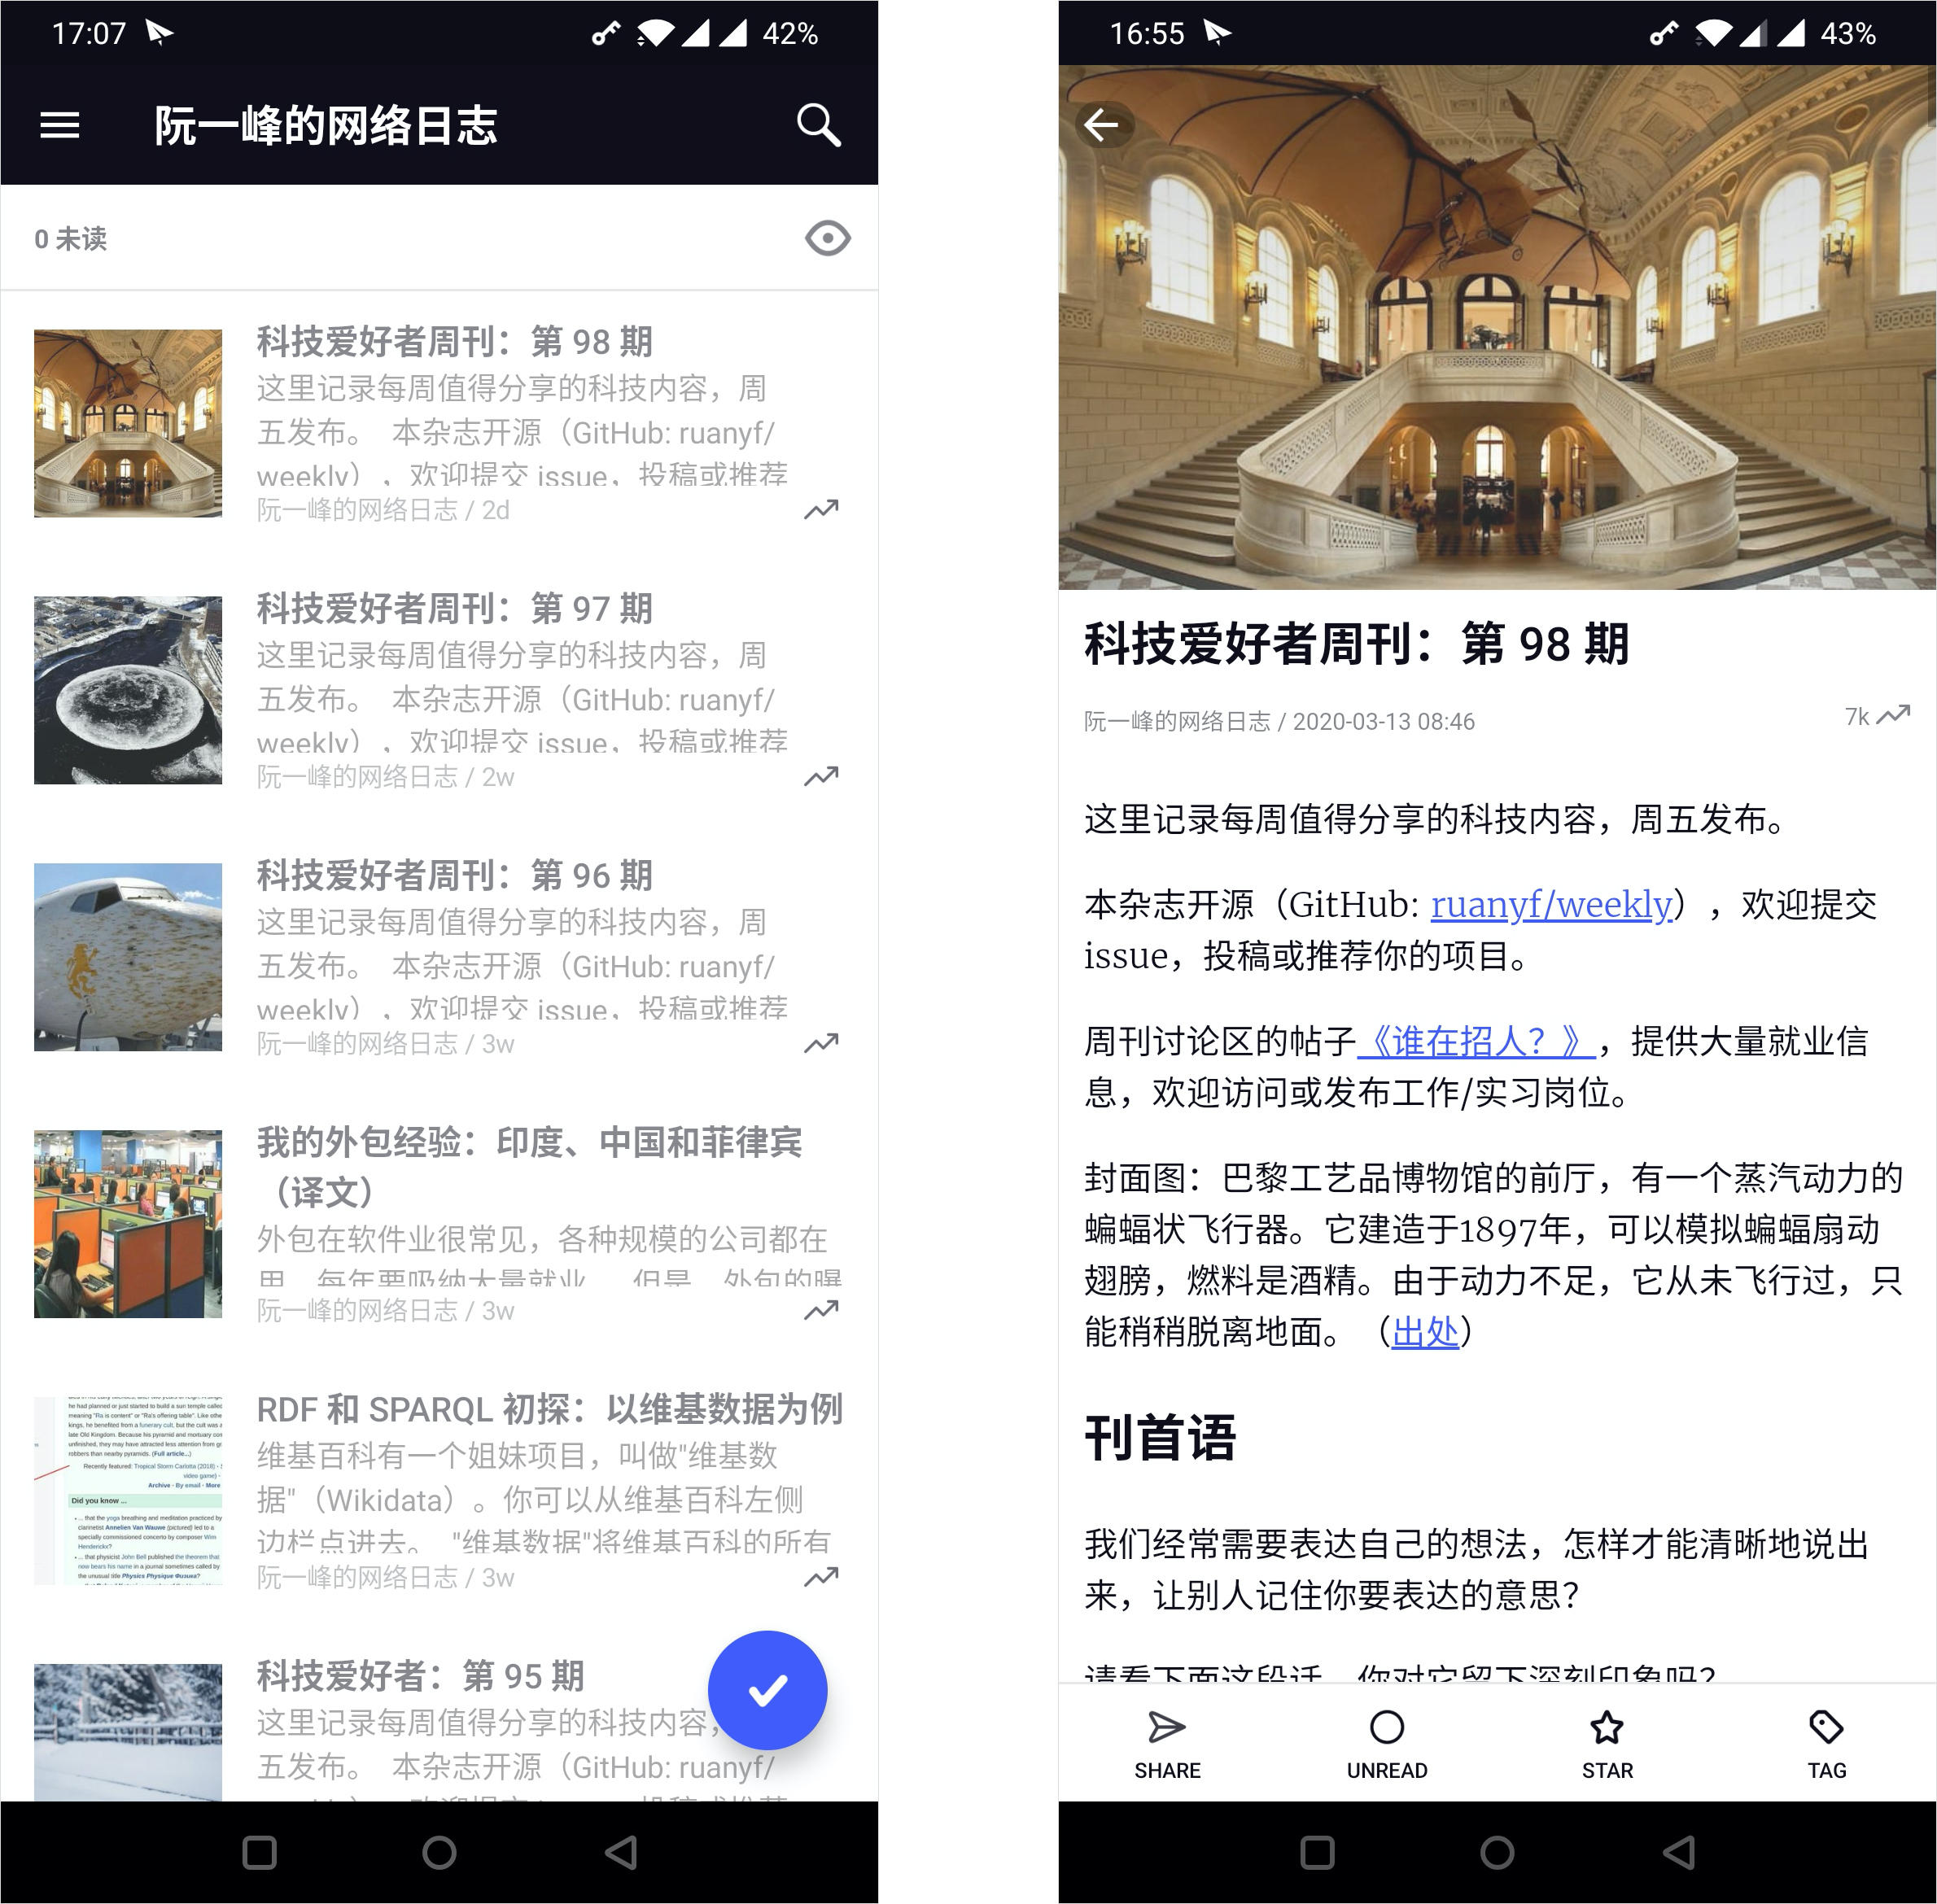 Inoreader Android 界面